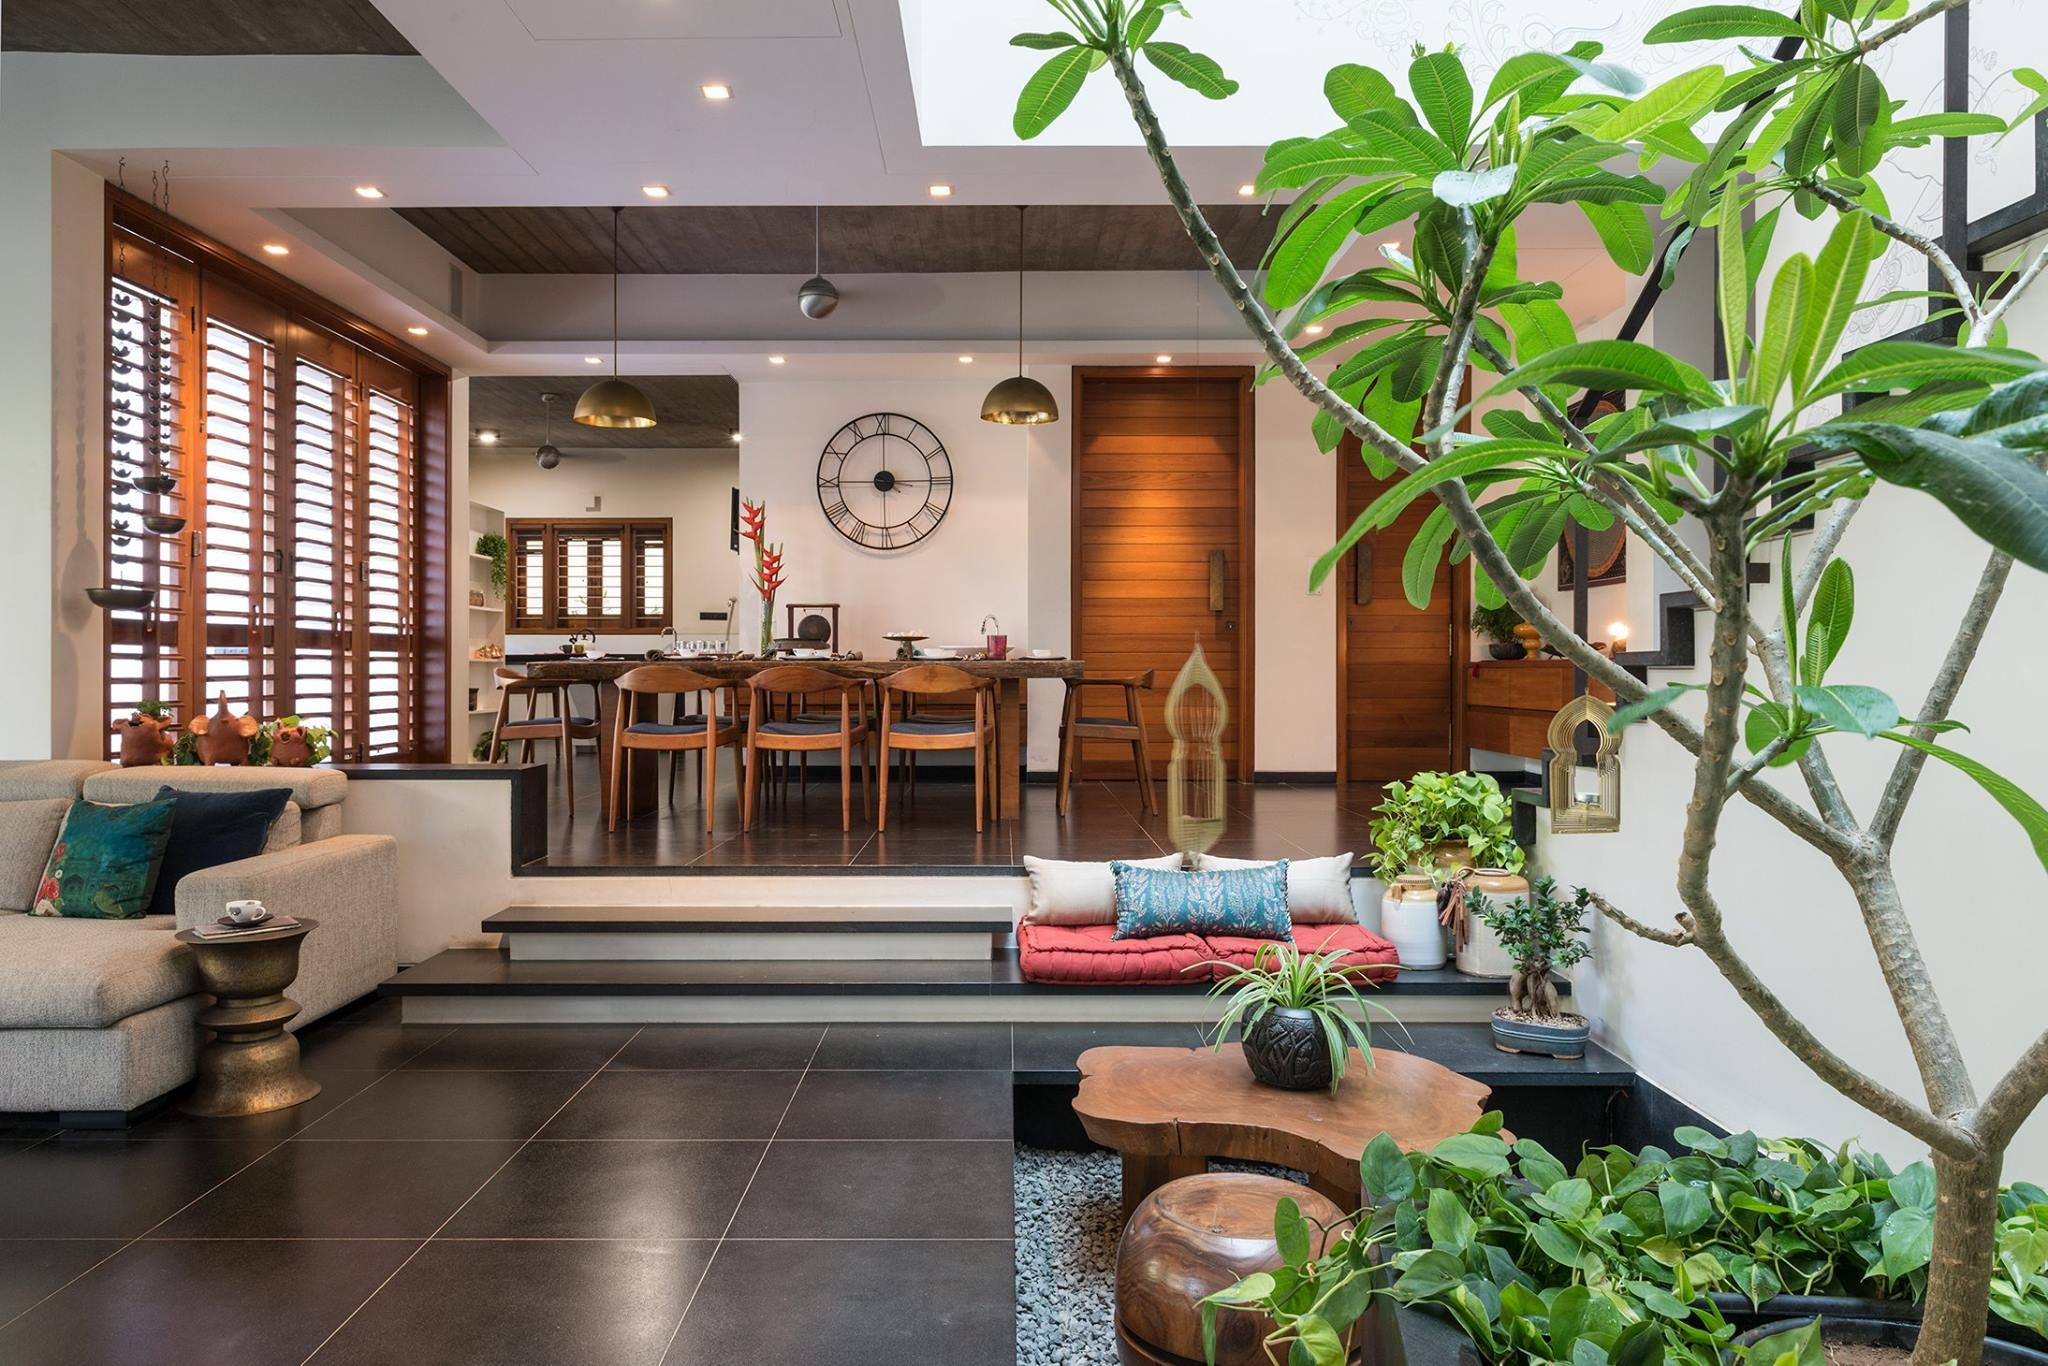 Top 10 Courtyard House In India | Indian home interior ...